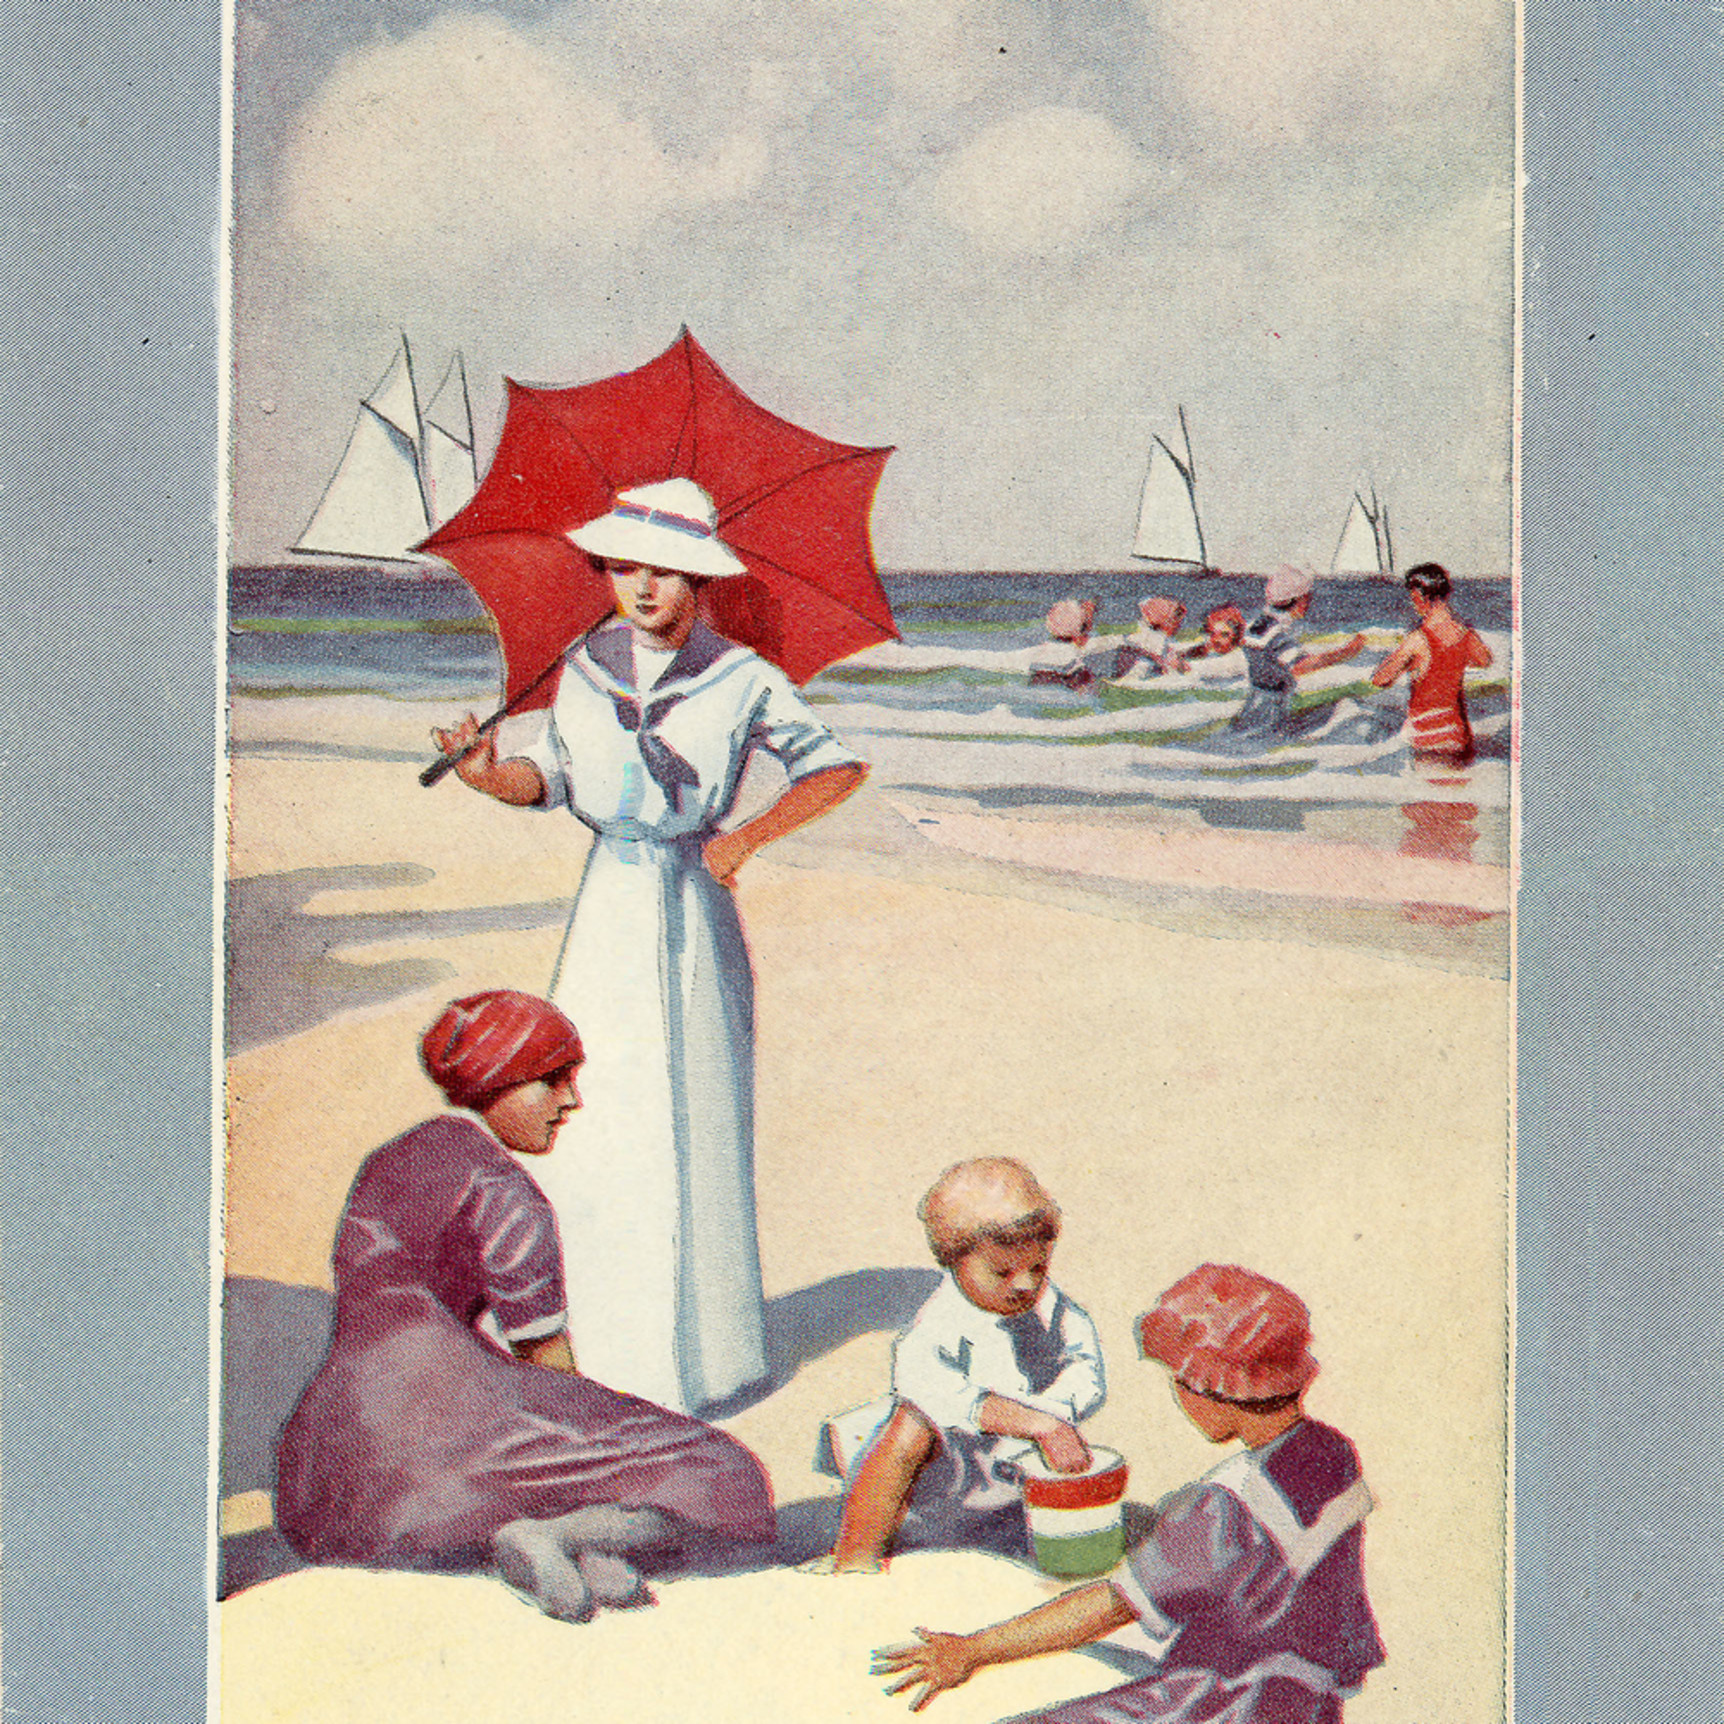 008 p nantucket mini posters 11.5x23.5 22 iaakpu